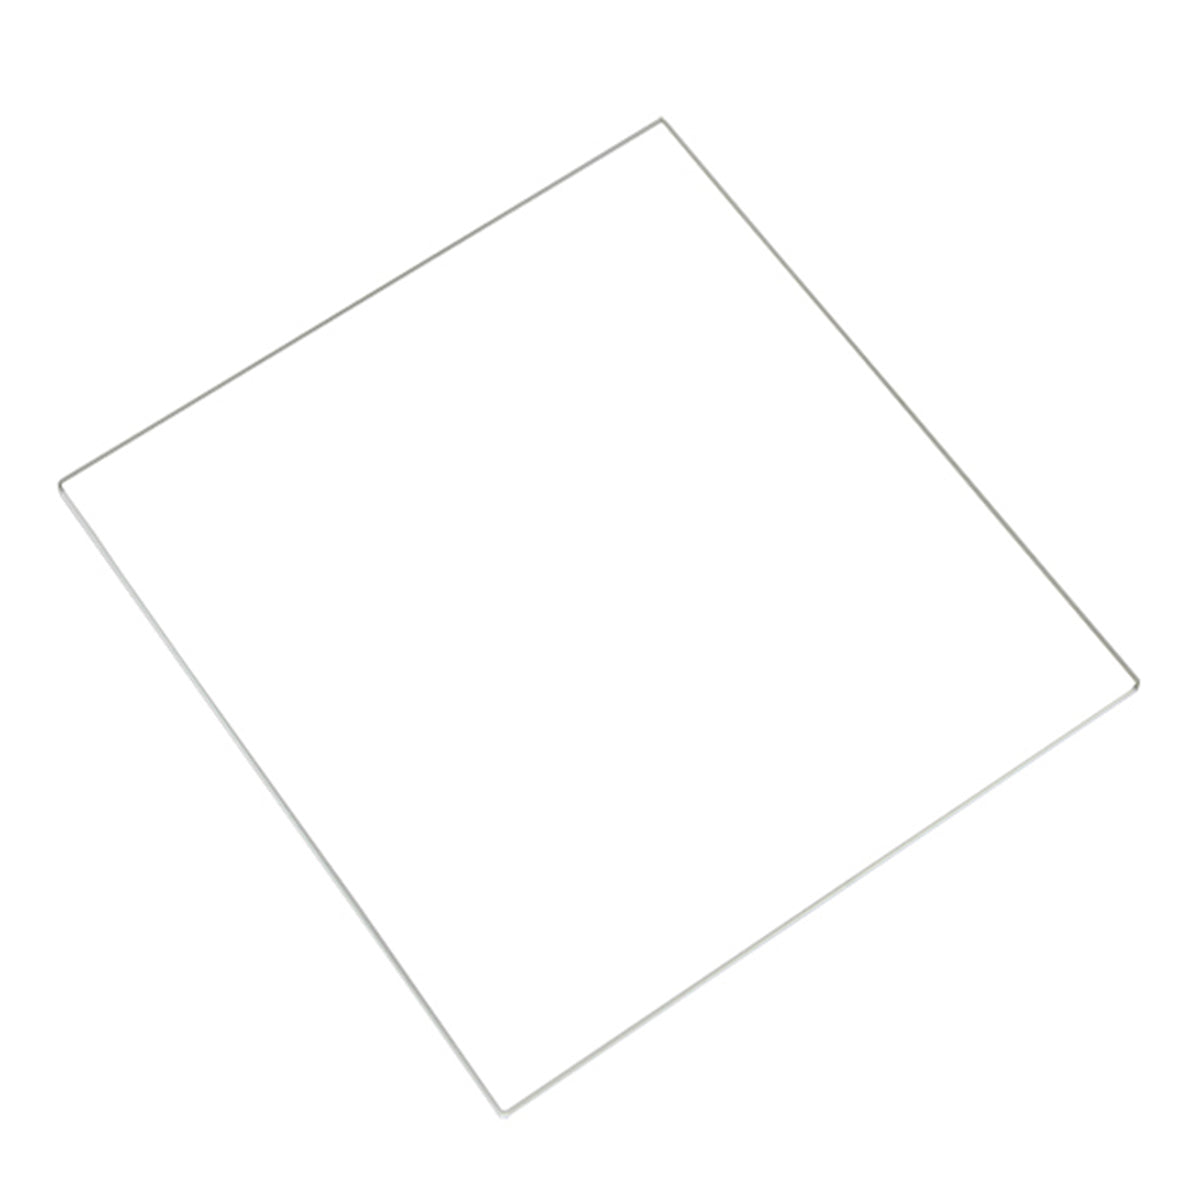 3D Printer Borosilicate Glass Build Plate For Heated Bed RepRap-Prusa-Mendel